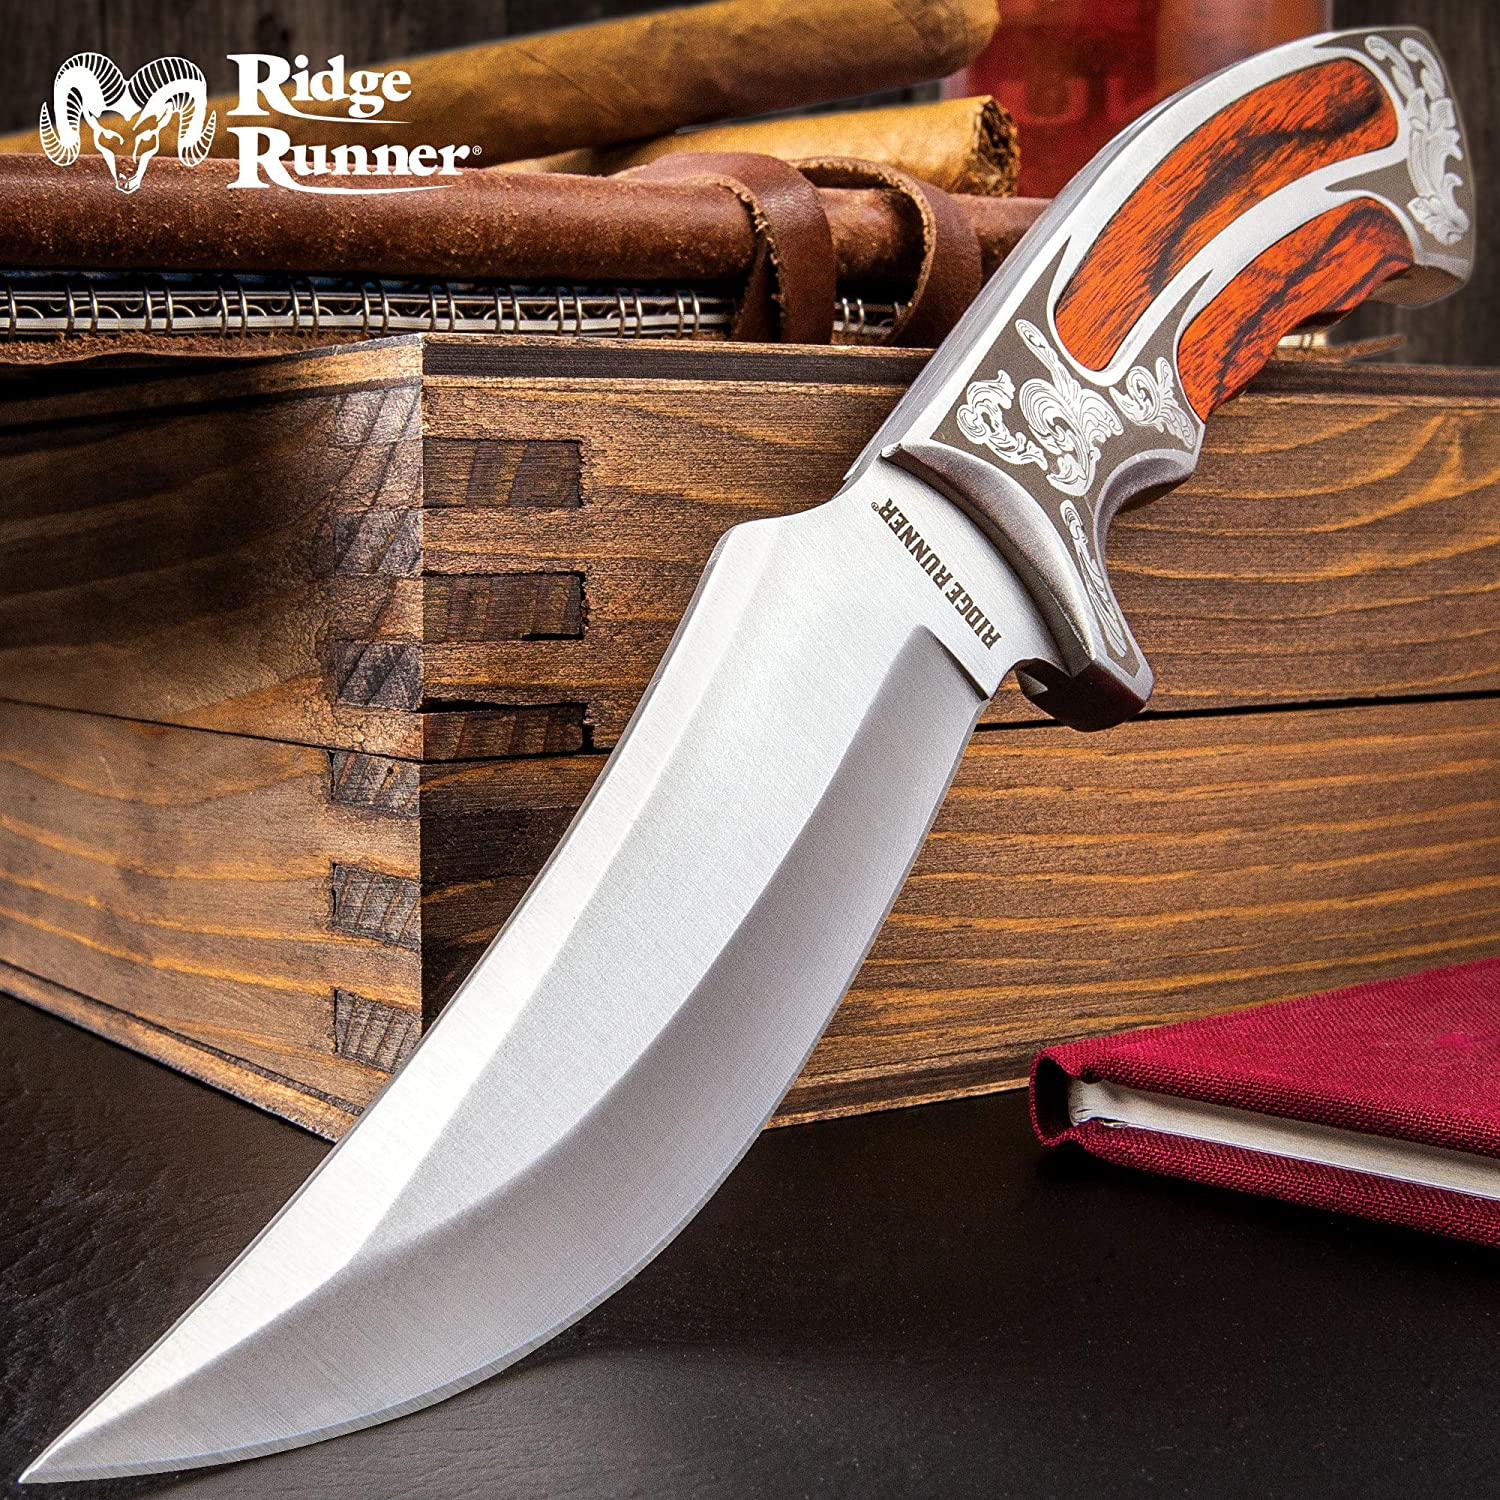 Ridge Runner Executive Wooden Bowie Knife on a Table